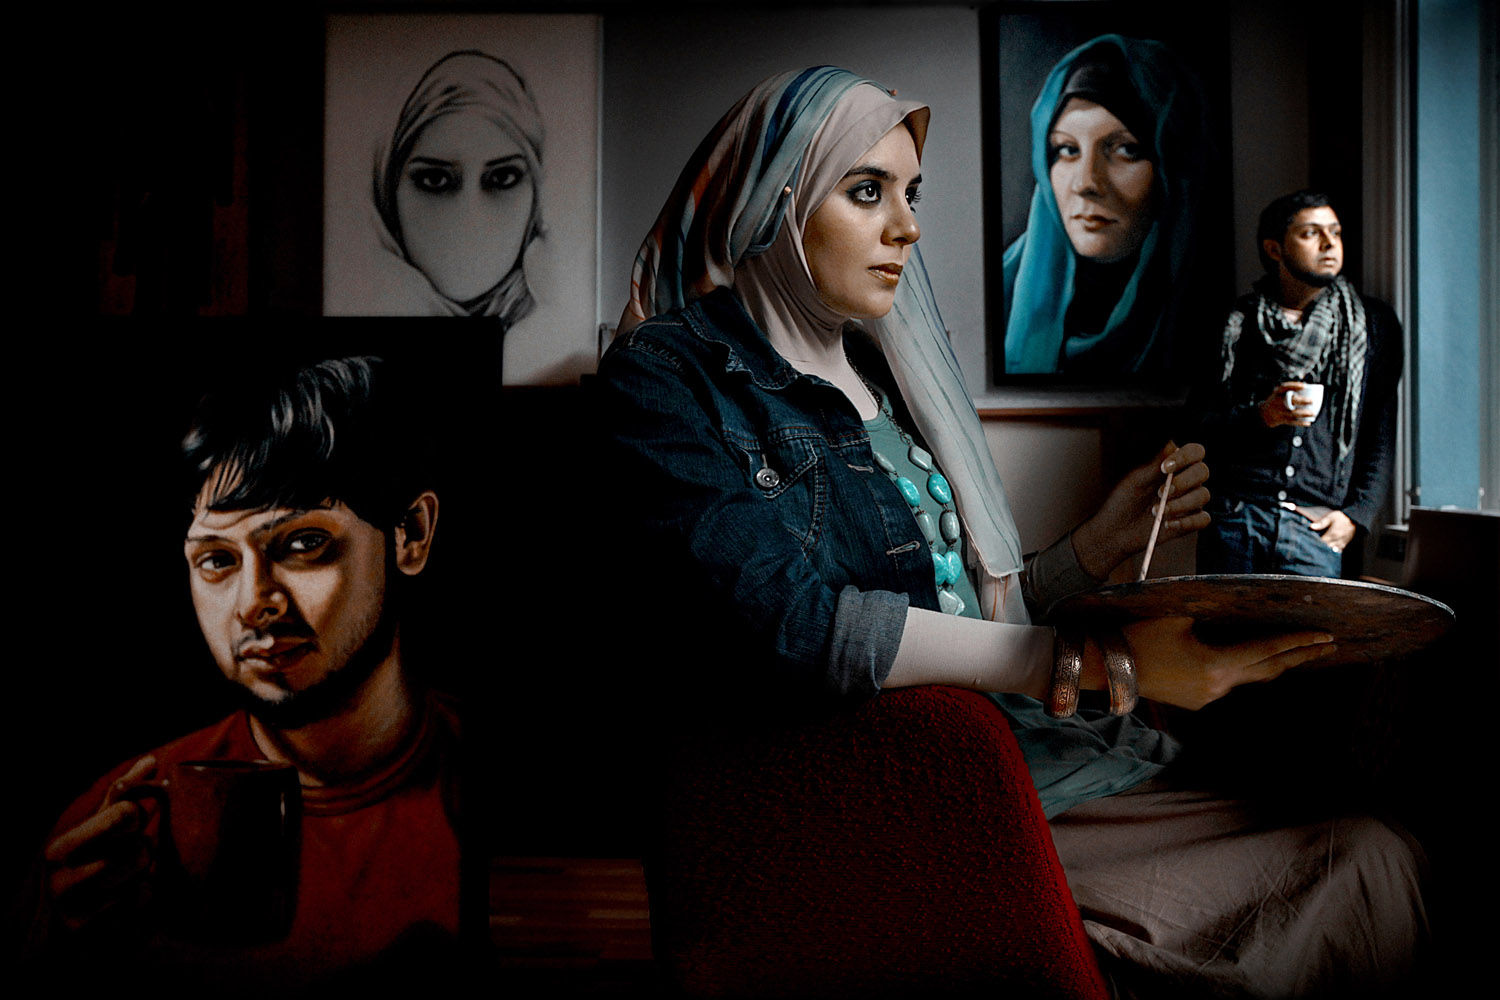 Iythar is a British artist in London and one of her paintings (top left) is titled, 'The Way Sarkozy Intended It'. She said, 'It is an interpretation of the burqa ban in France. It shows how the ban takes away the voice and identity of Muslim women, leaving them speechless and incomplete'. July 2011.